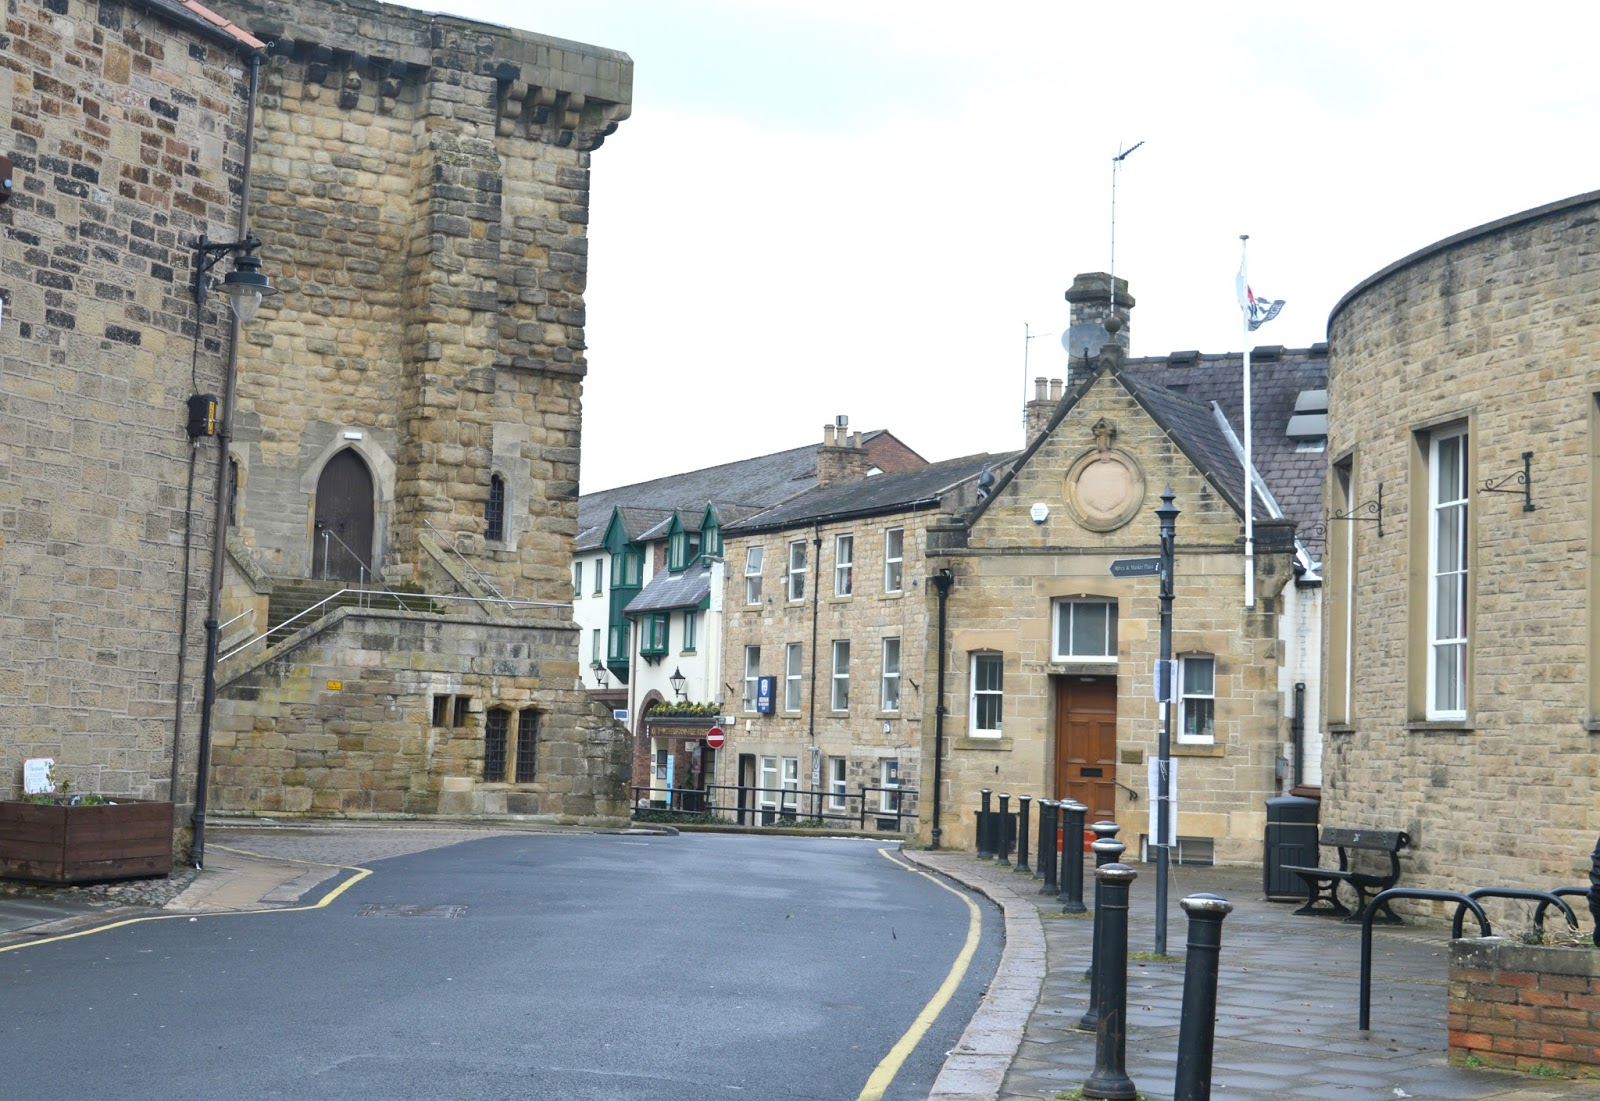 A Day Trip to Hexham, Northumberland